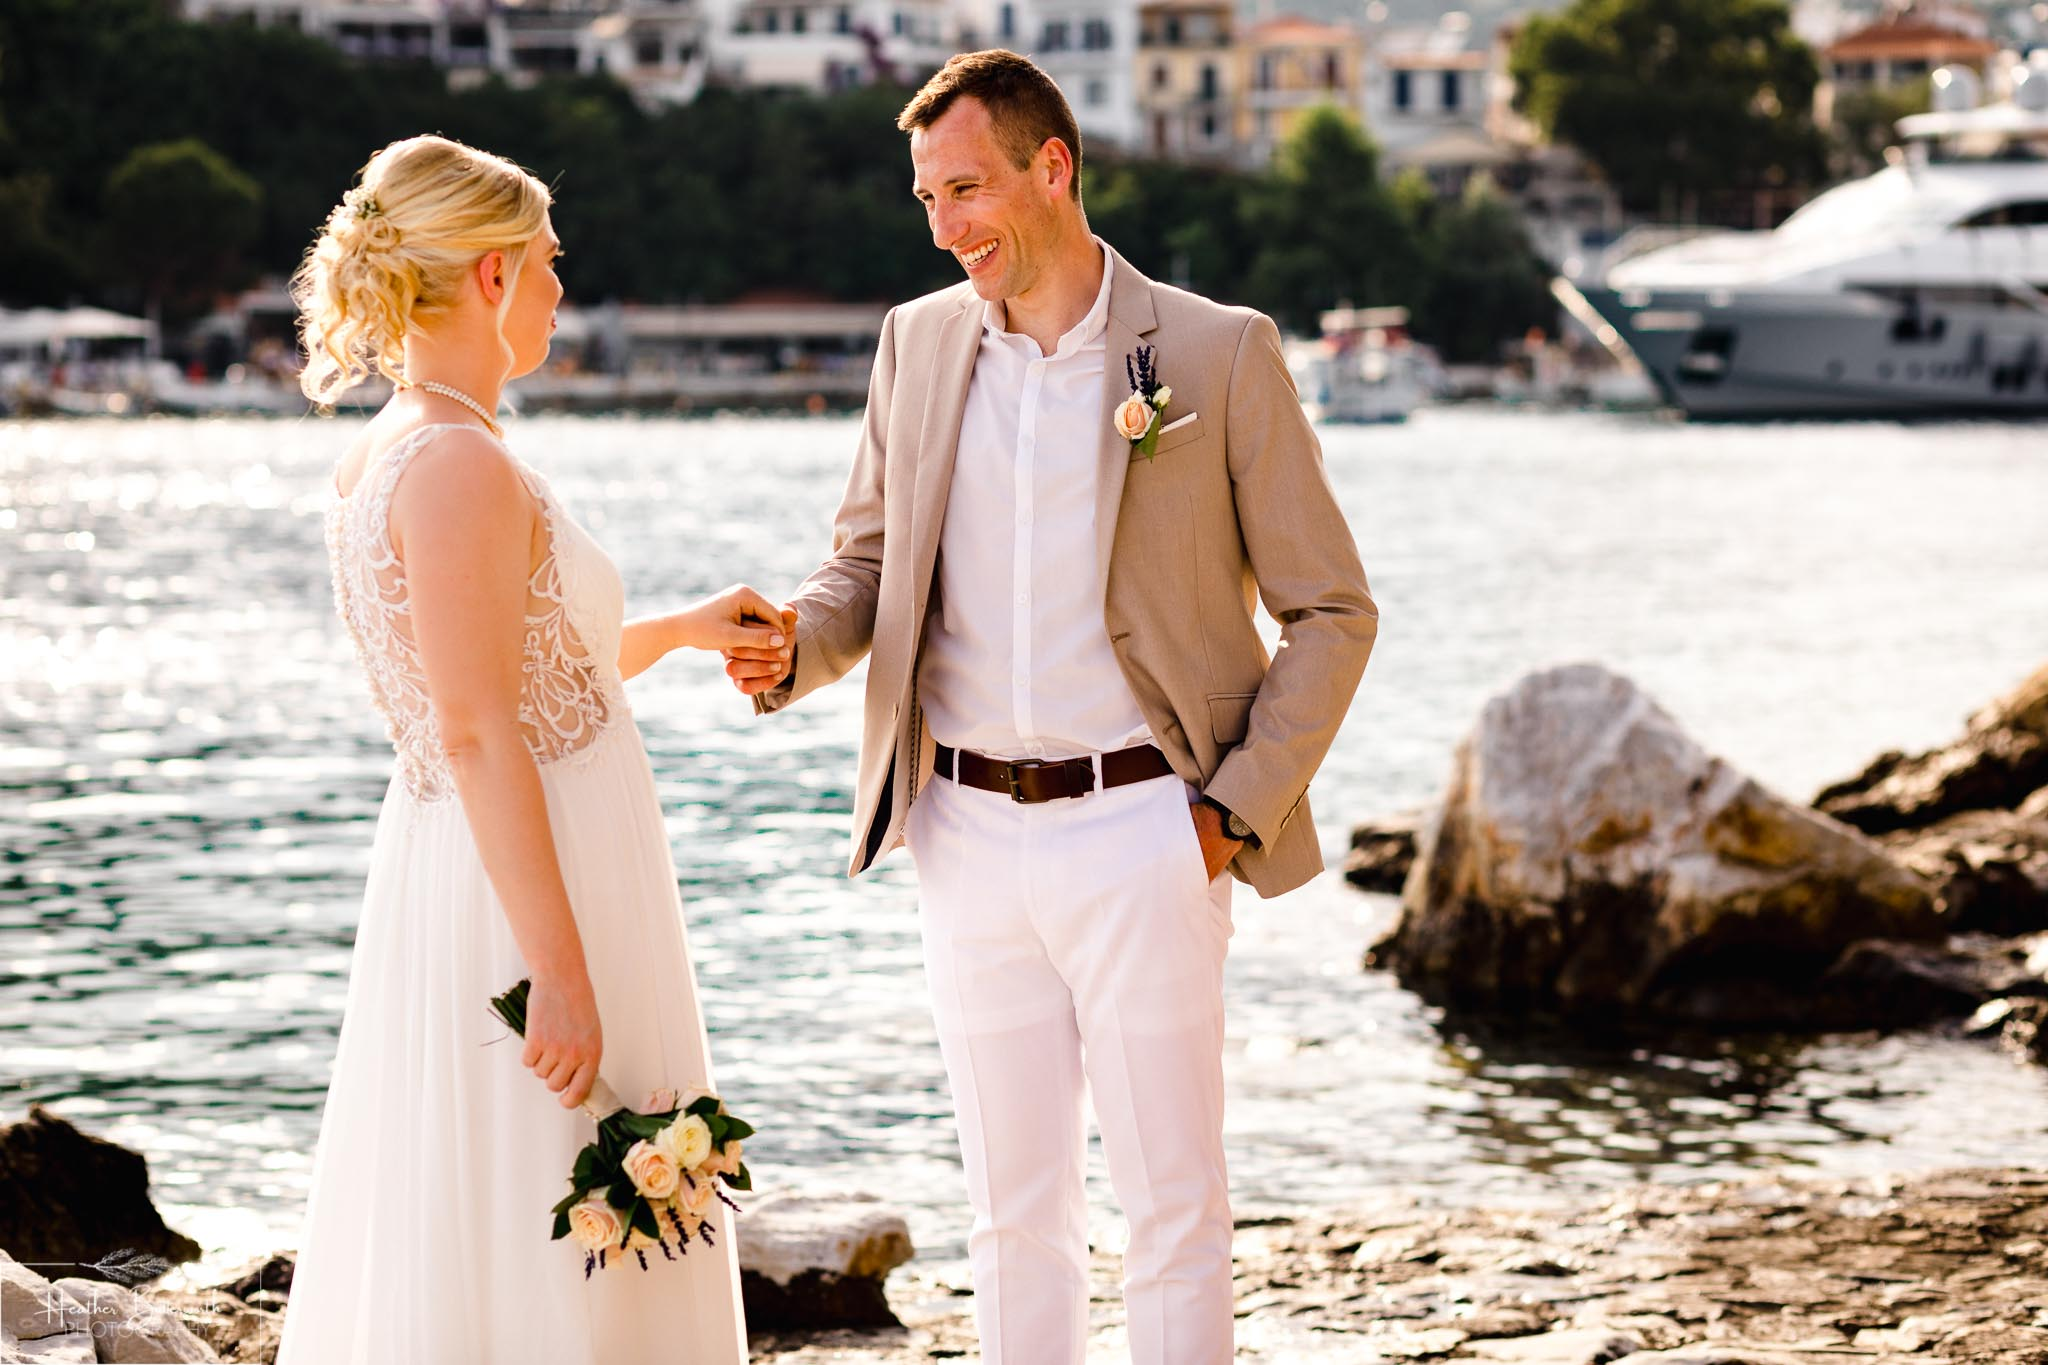 Real wedding in Skiathos Town captured by Heather Butterworth Photography (1 of 1)